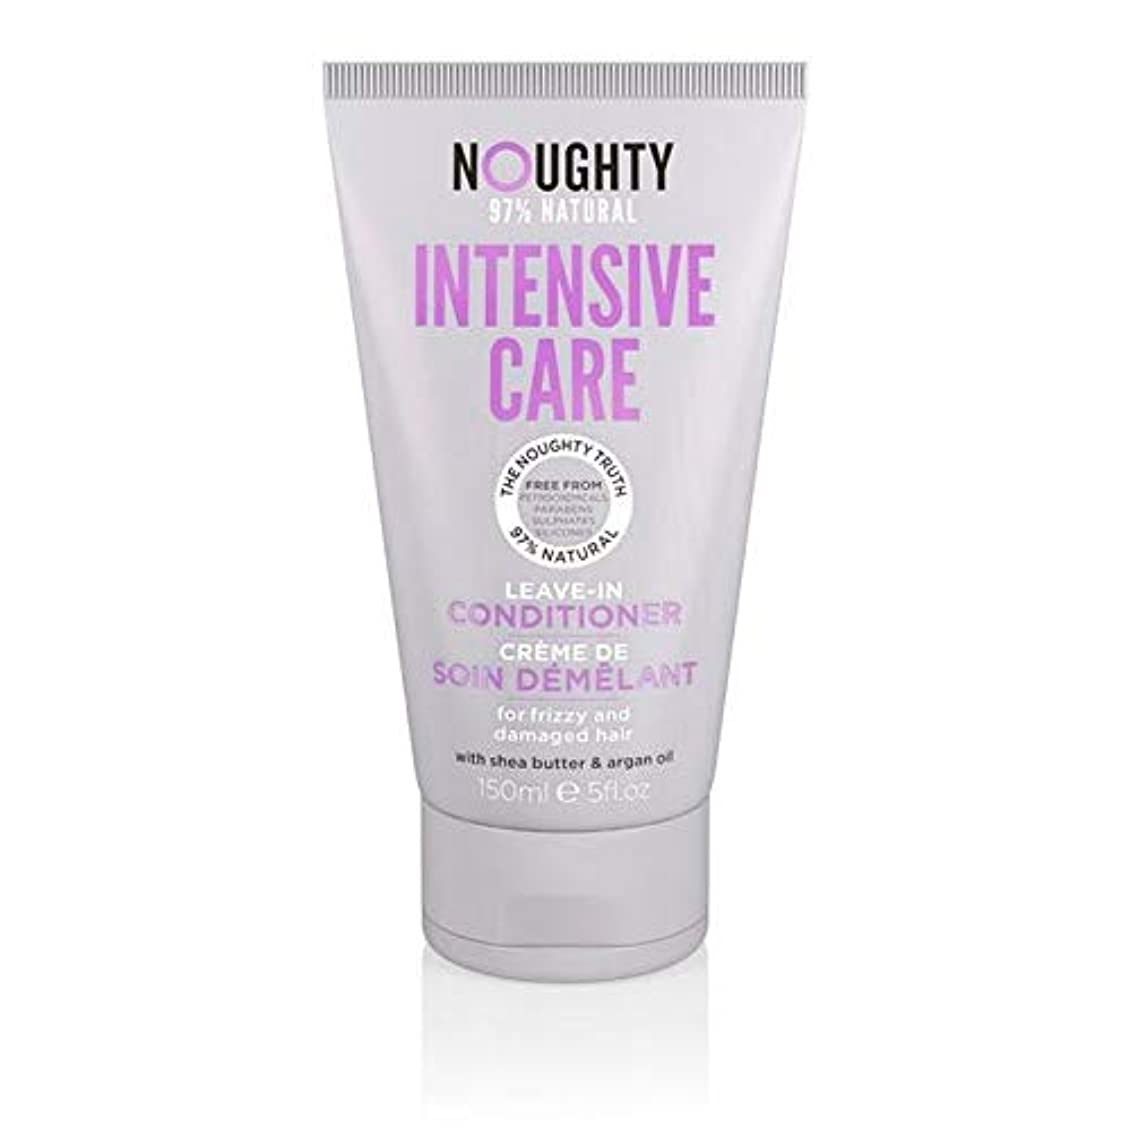 [Noughty] Conditonerの150ミリリットルでNoughty集中治療休暇 - Noughty Intensive Care Leave in Conditoner 150ml [並行輸入品]